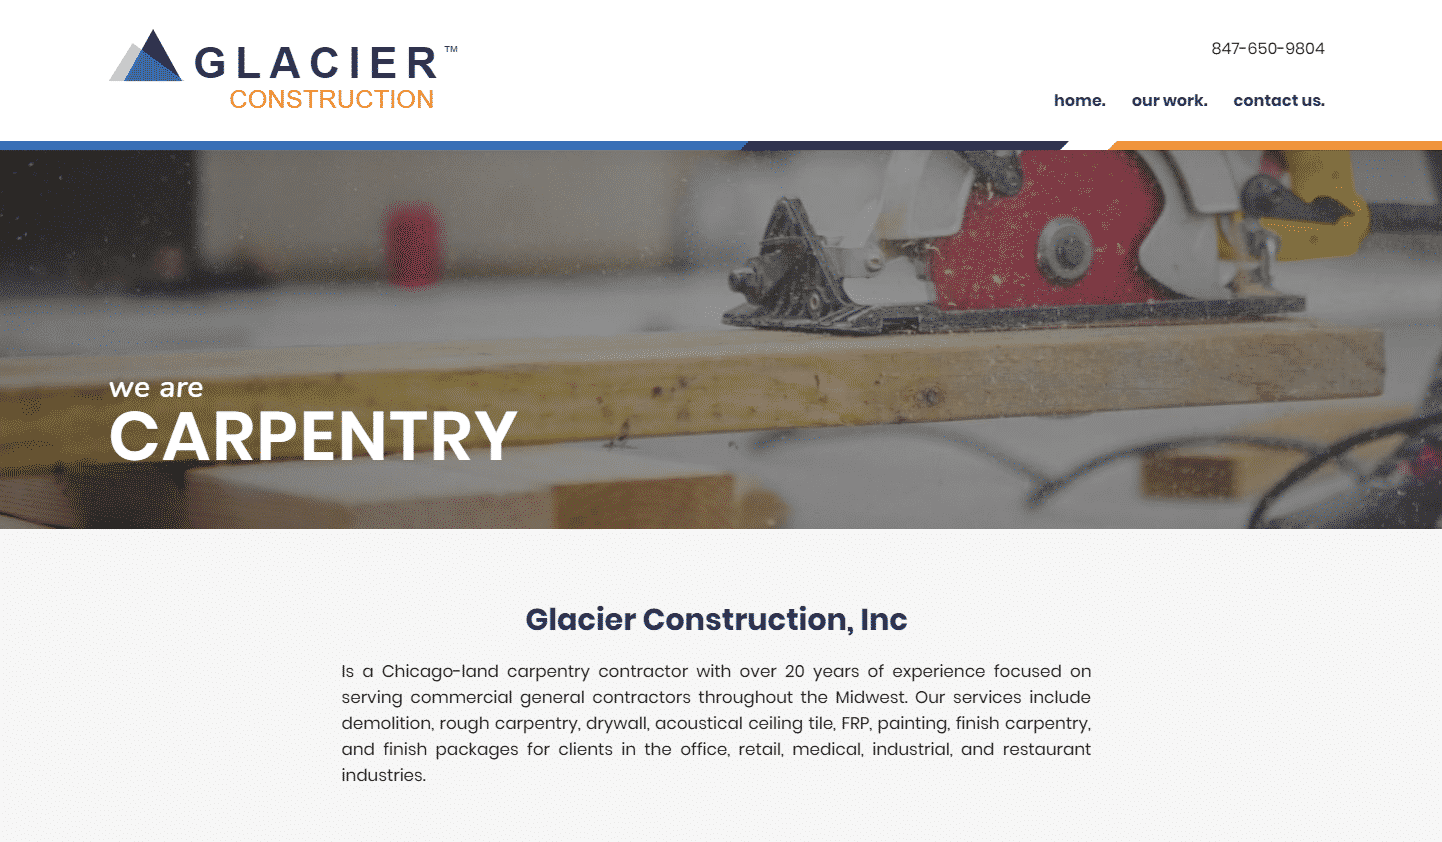 A screen shot of the Glacier Construction, INC home page